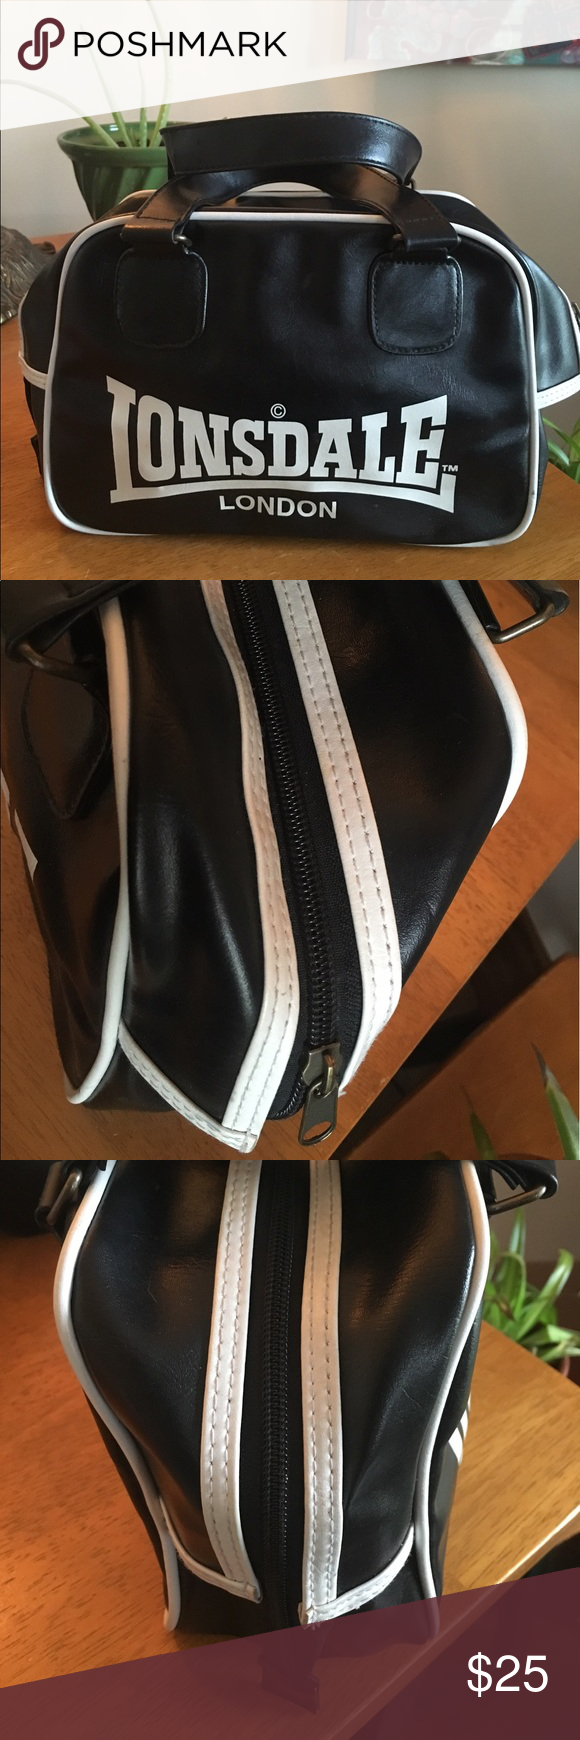 728eaf6fd7f3 Lonsdale bowling bag barely used Lonsdale of London bowling bag! Barely  used. No wear or tear outside. Small usage inside lonsdale Bags Mini Bags